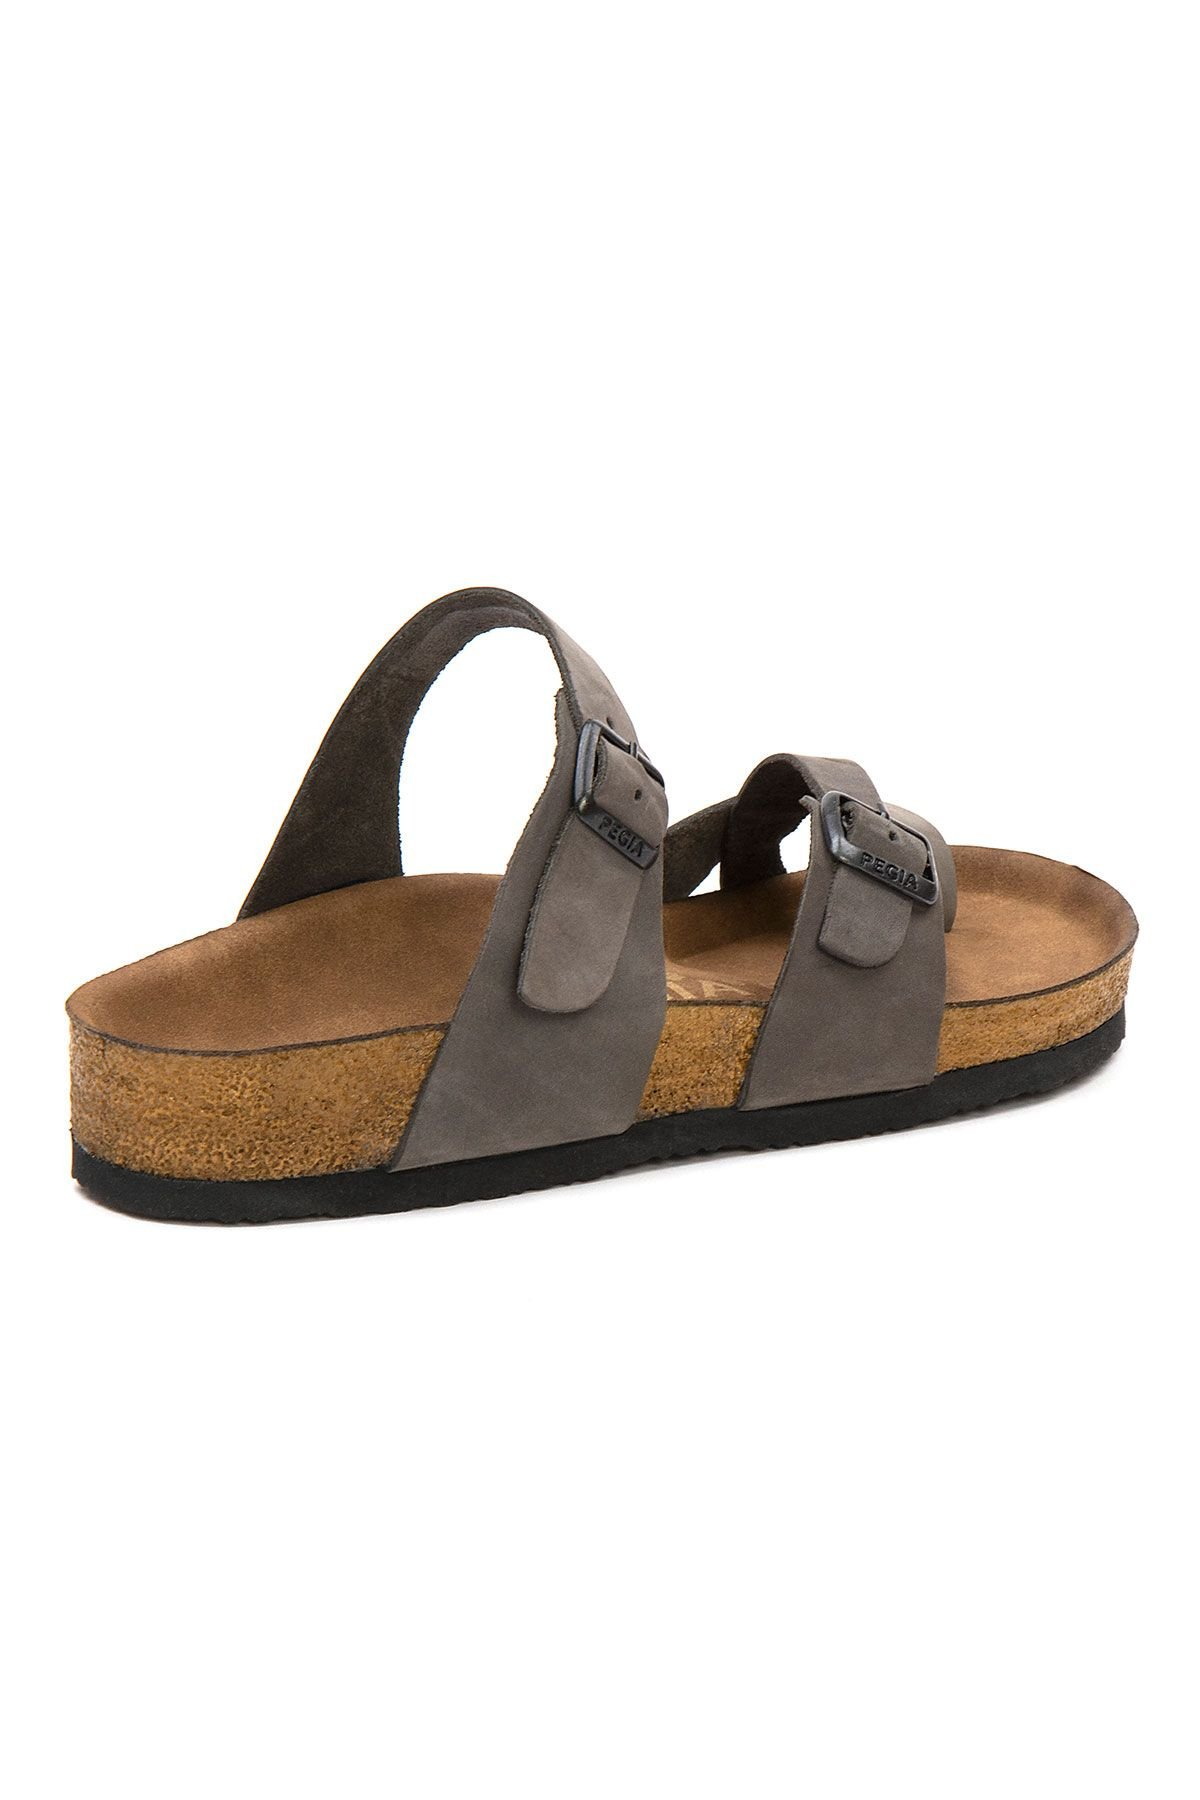 Pegia Women's Leather Slippers 215522 Gray